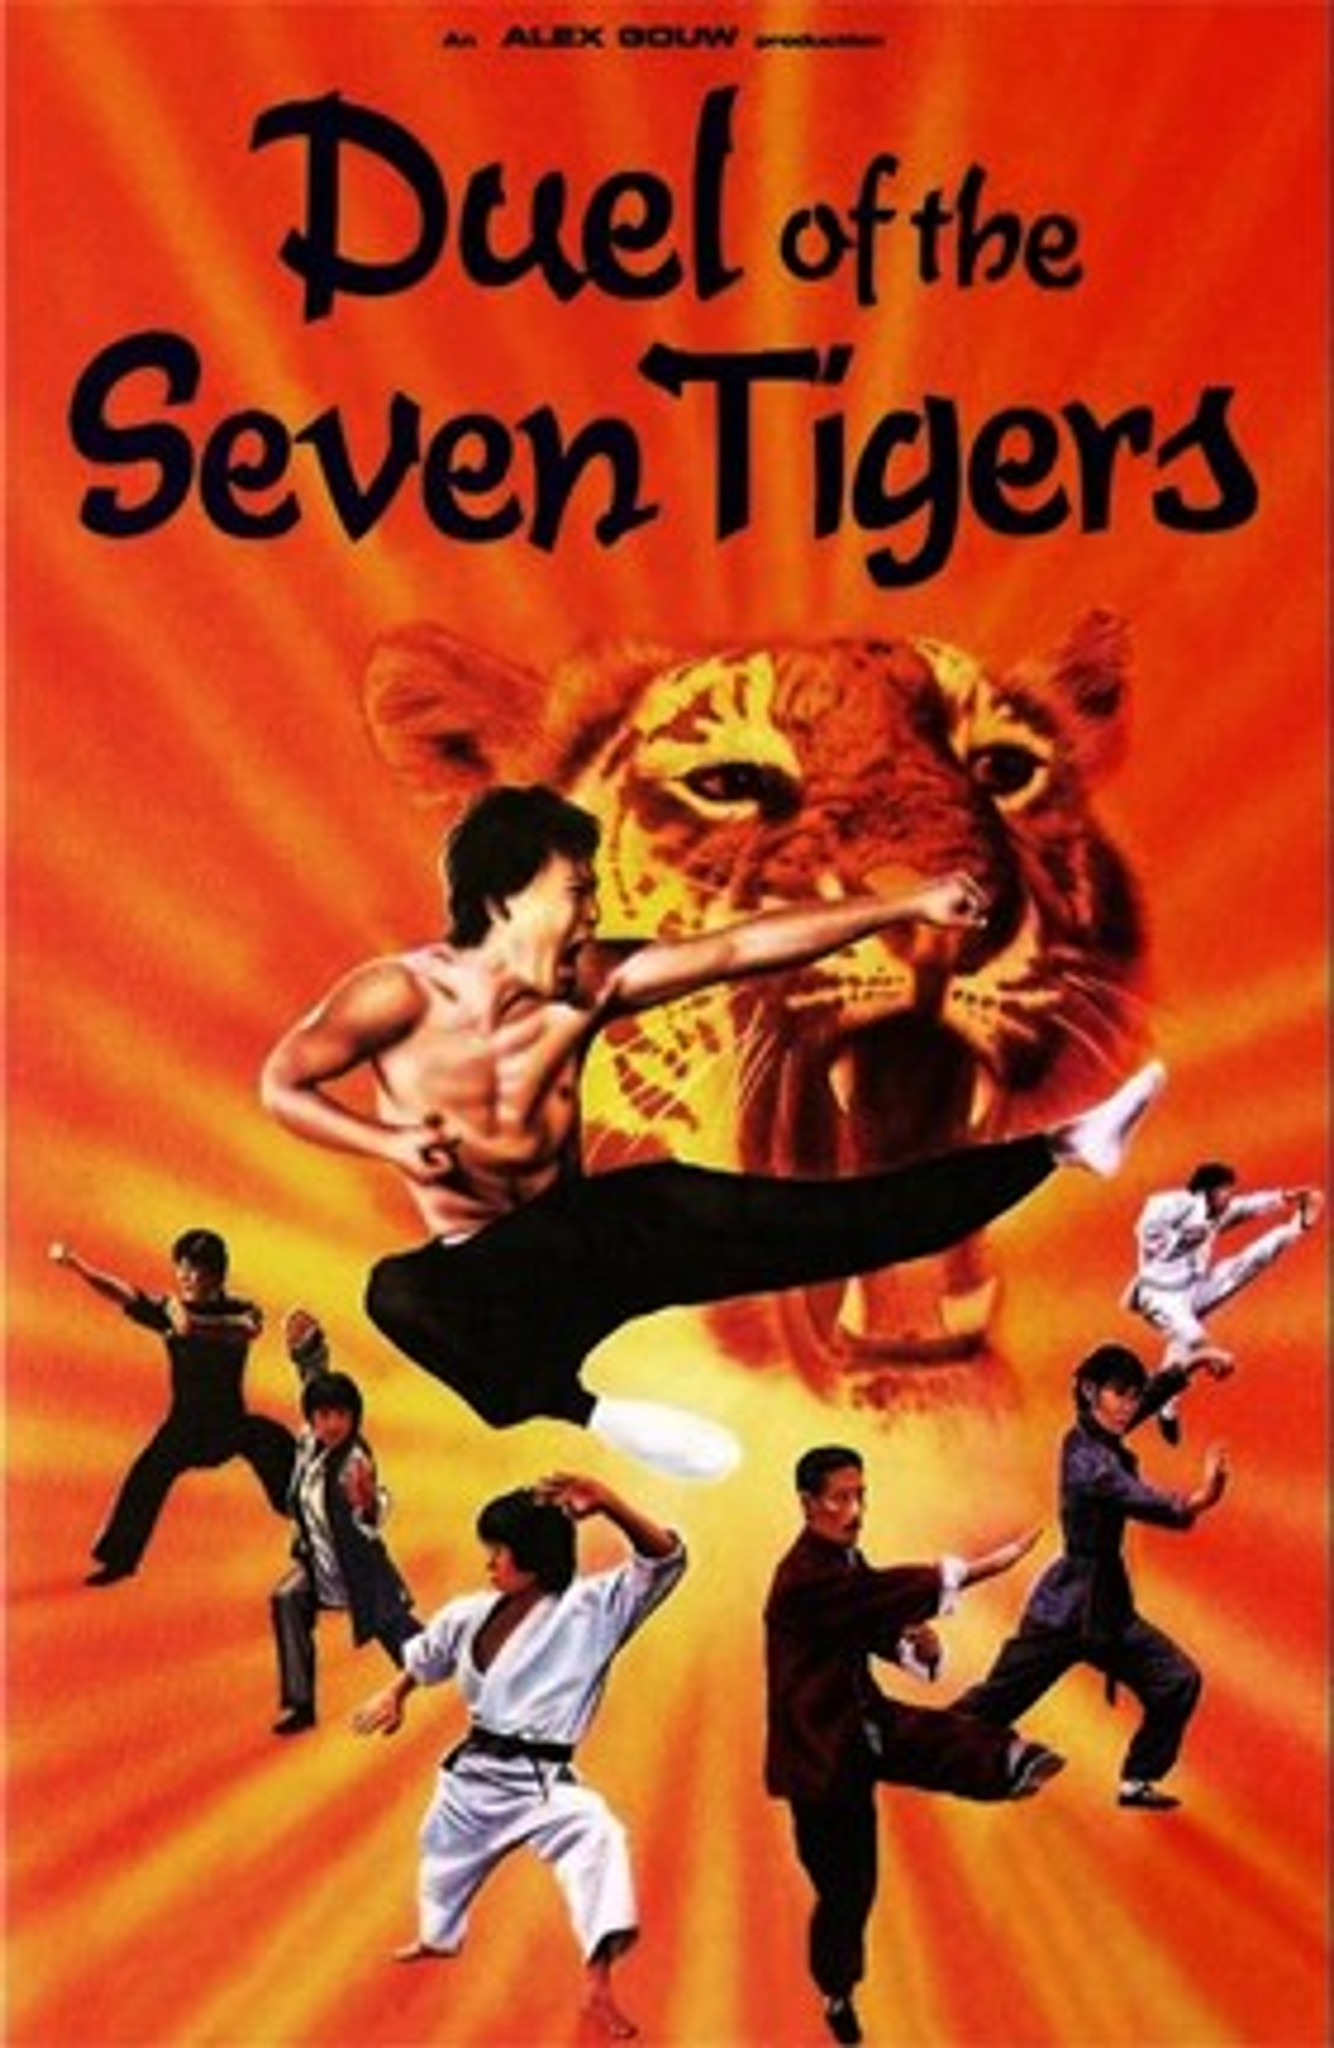 Duel of the Seven Tigers Dvd